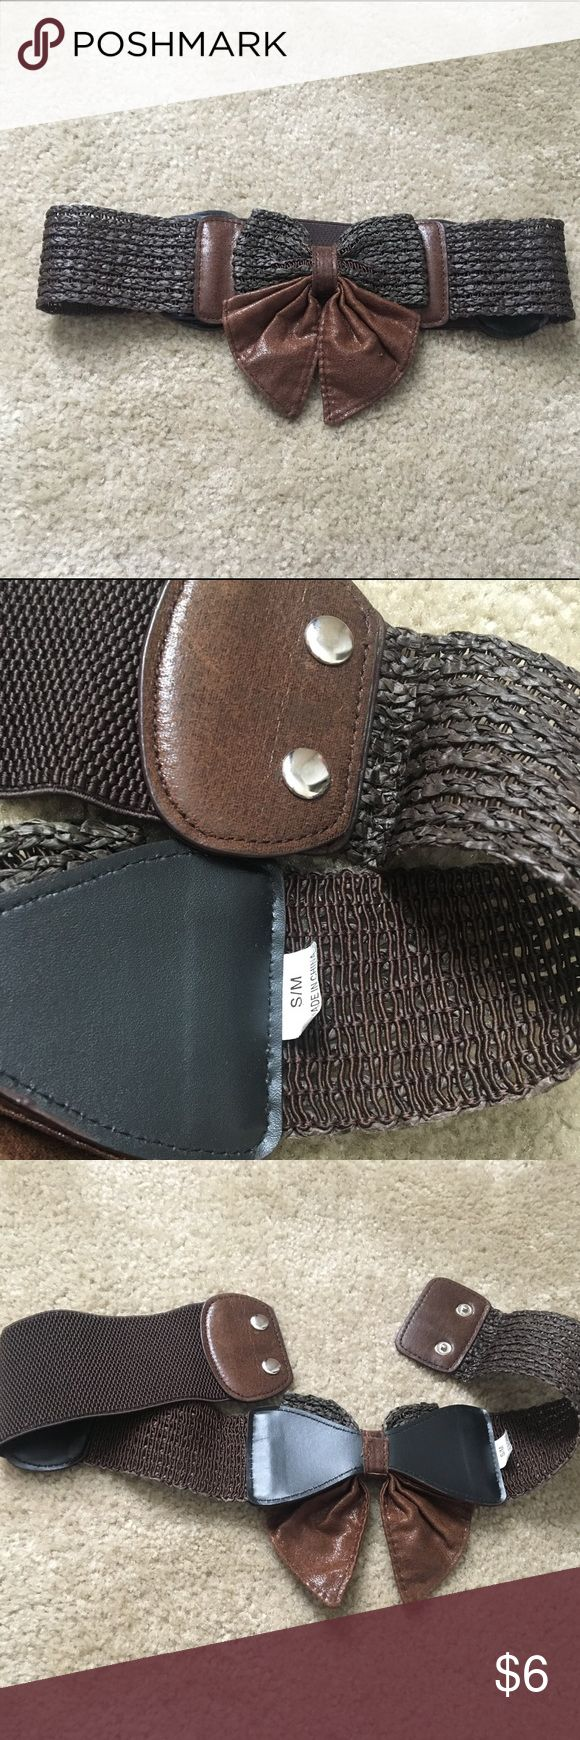 Size s/m Brown Bow belt Size s/m Brown Bow belt. Has some stretch to it and a snap closure. Accessories Belts